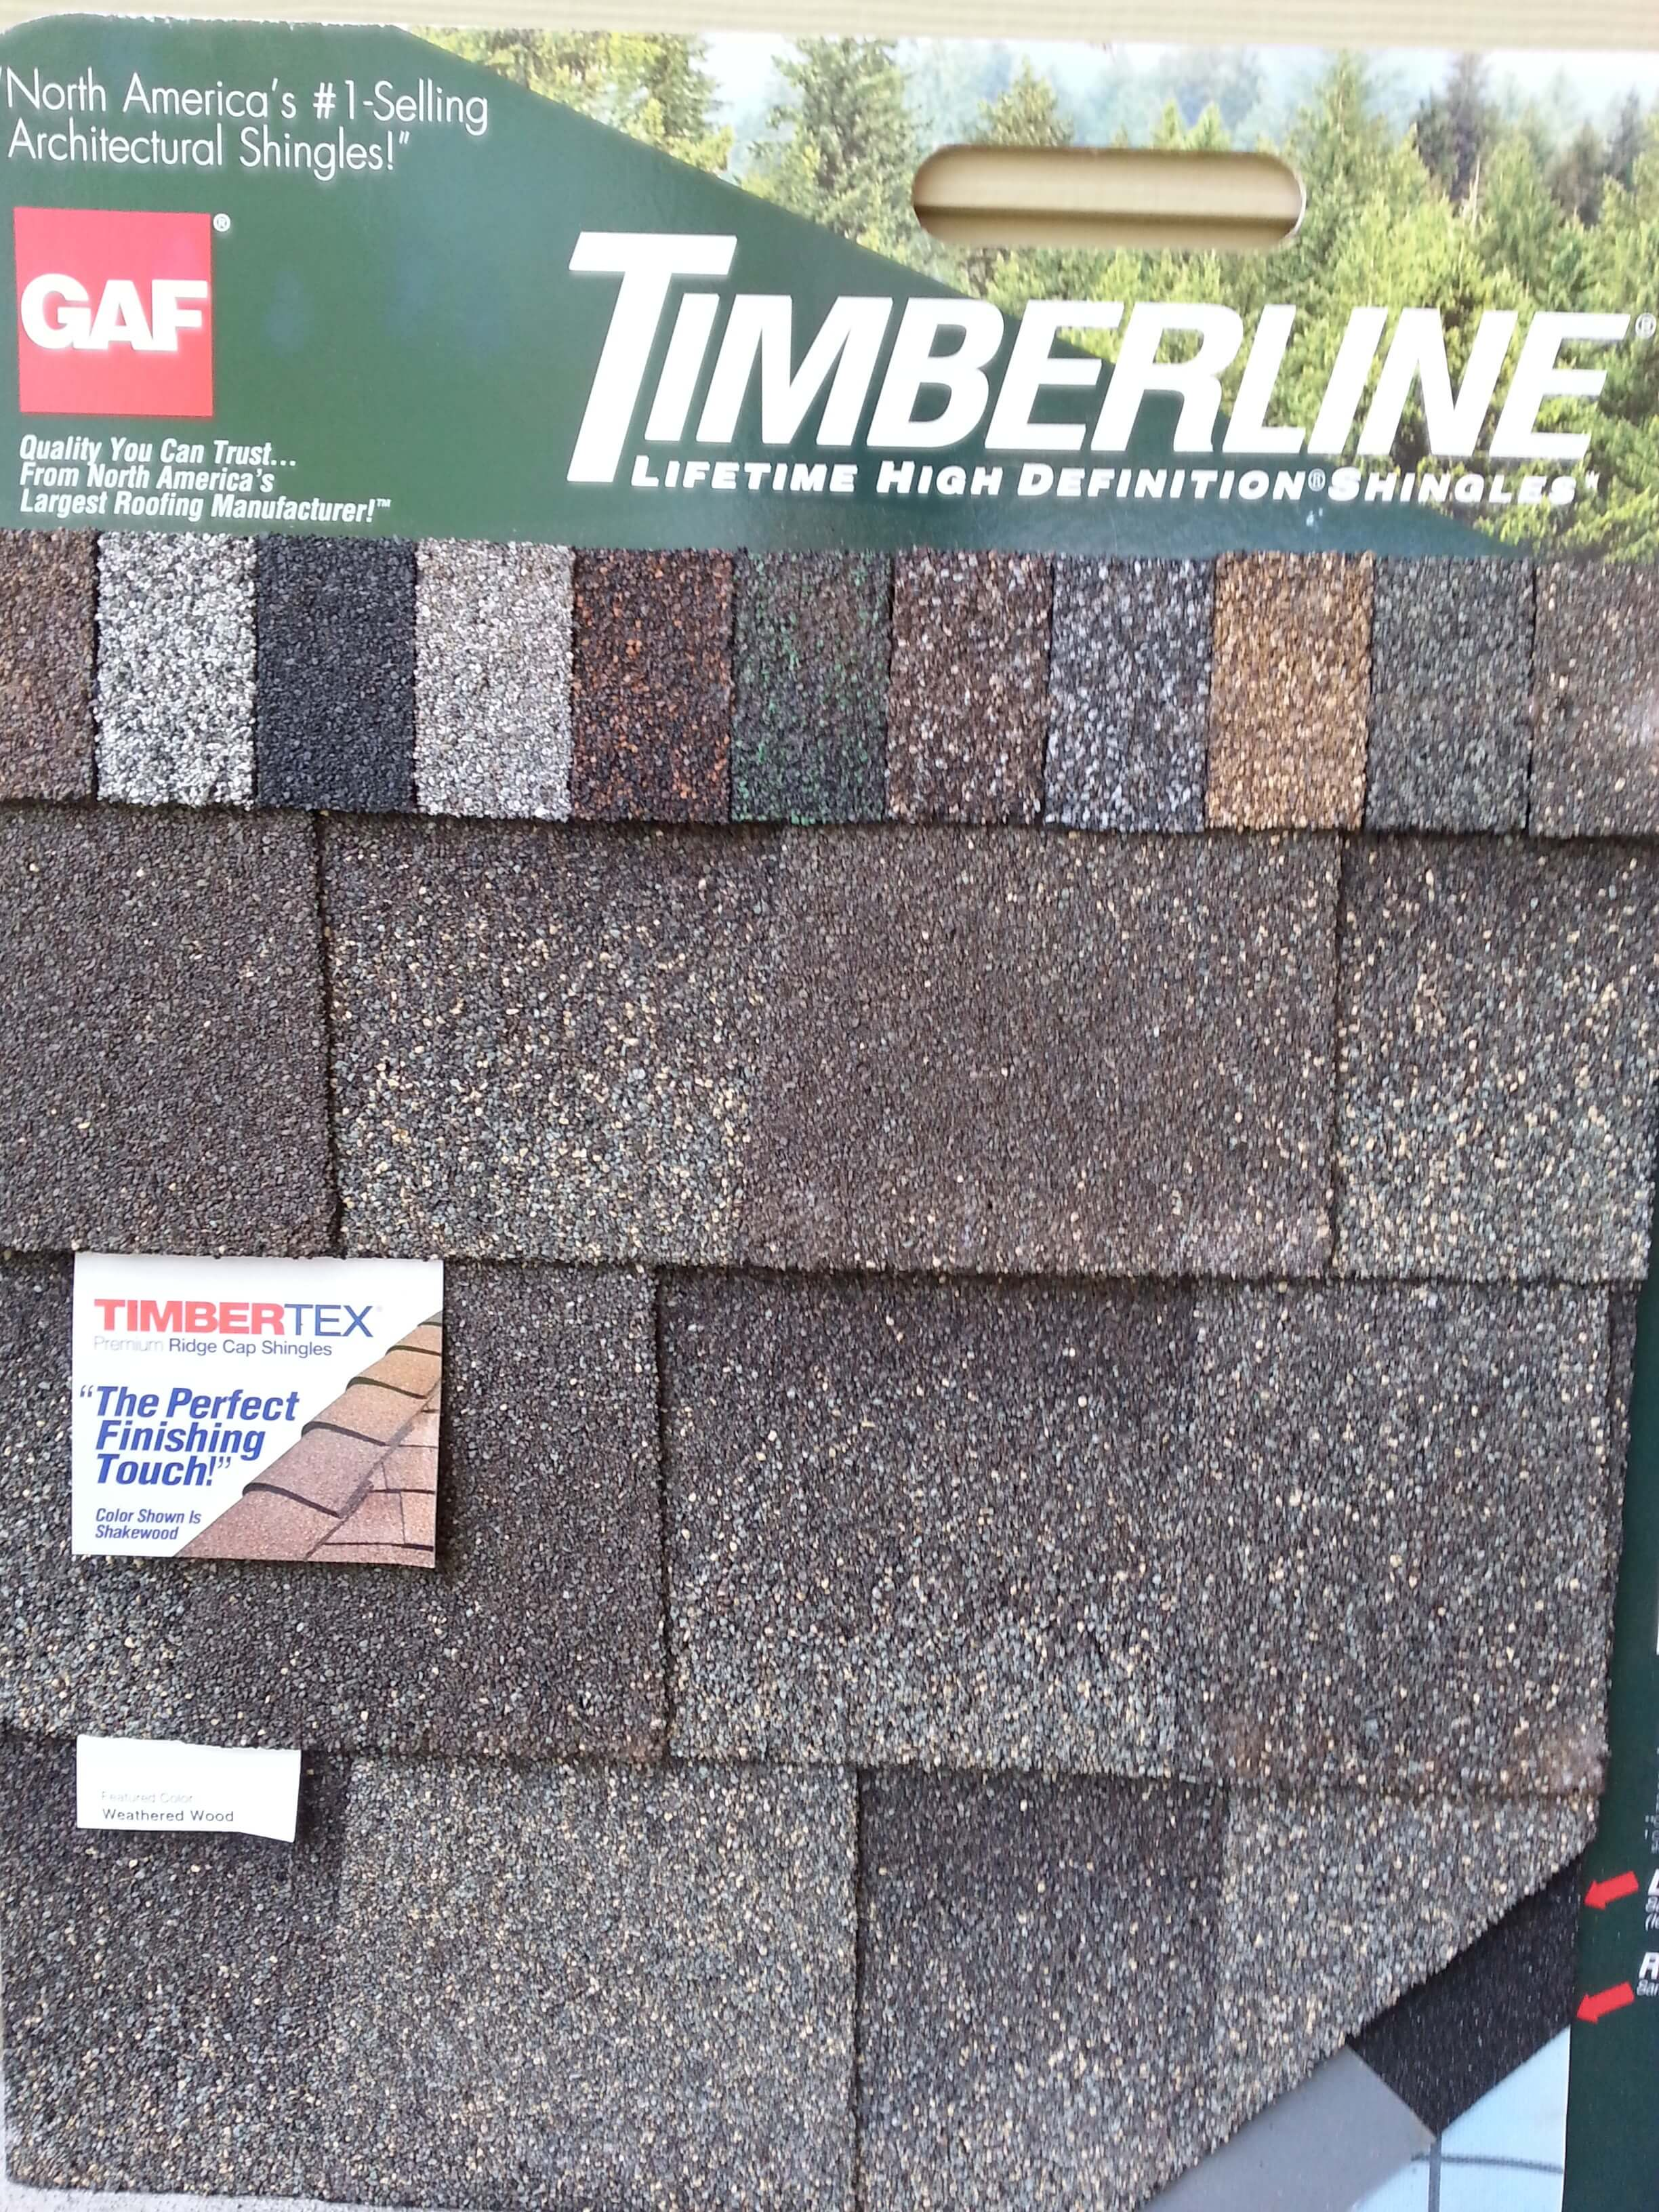 50 Year Roof Shingles Prices